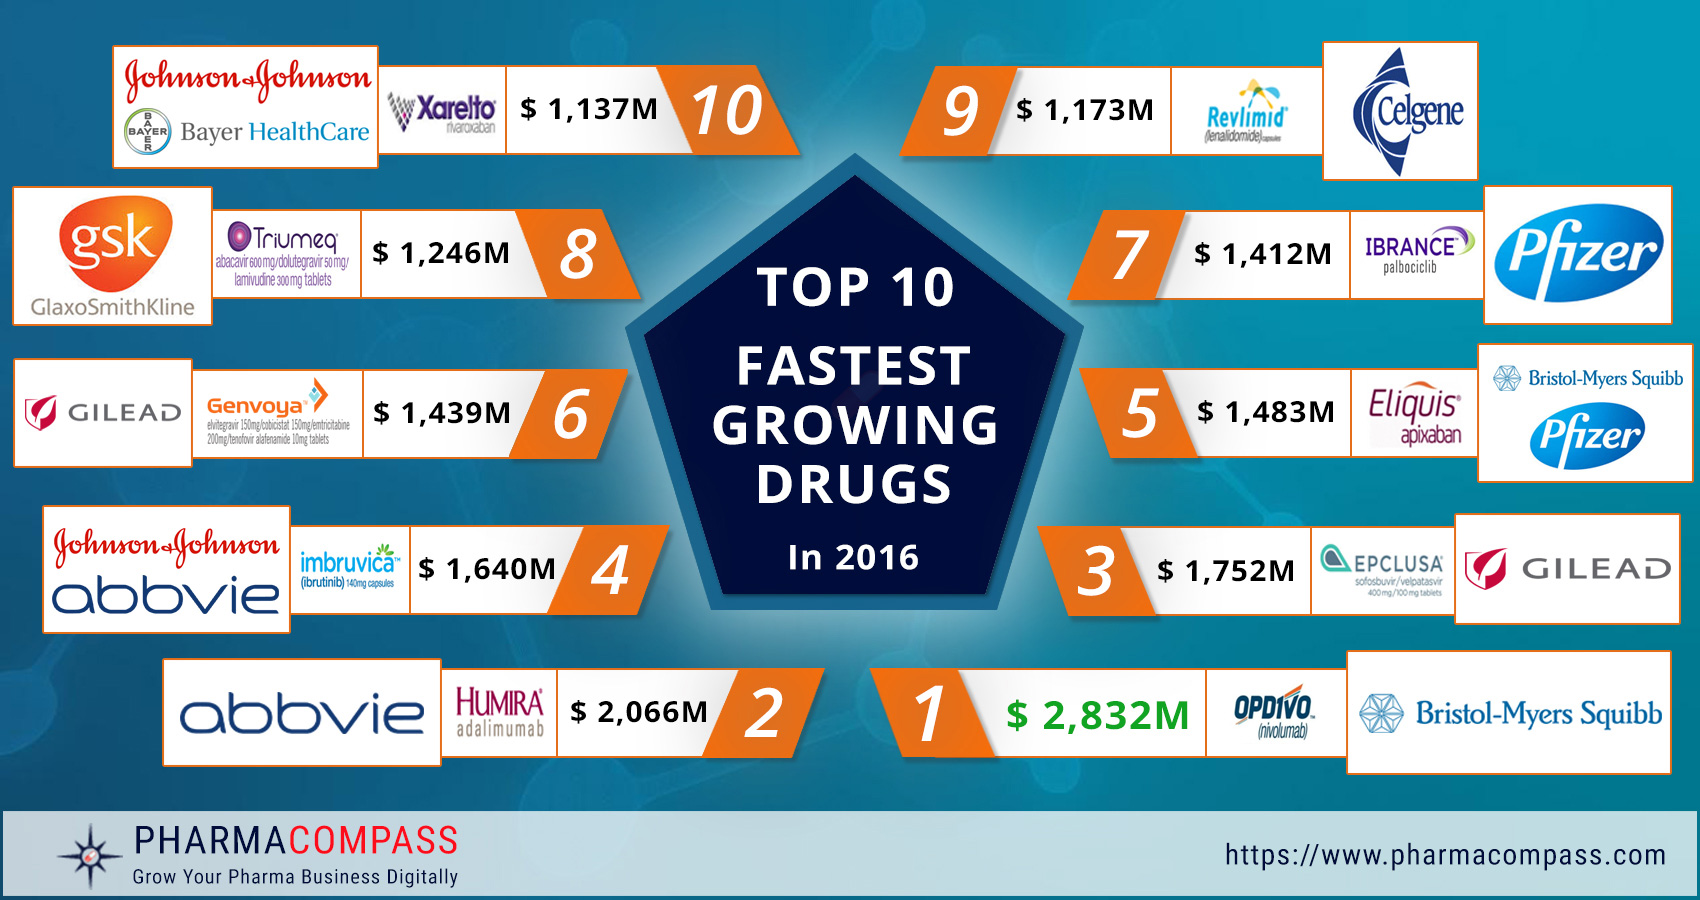 Chemical entities SHINE in the top 10 fastest-growing drugs of 2016